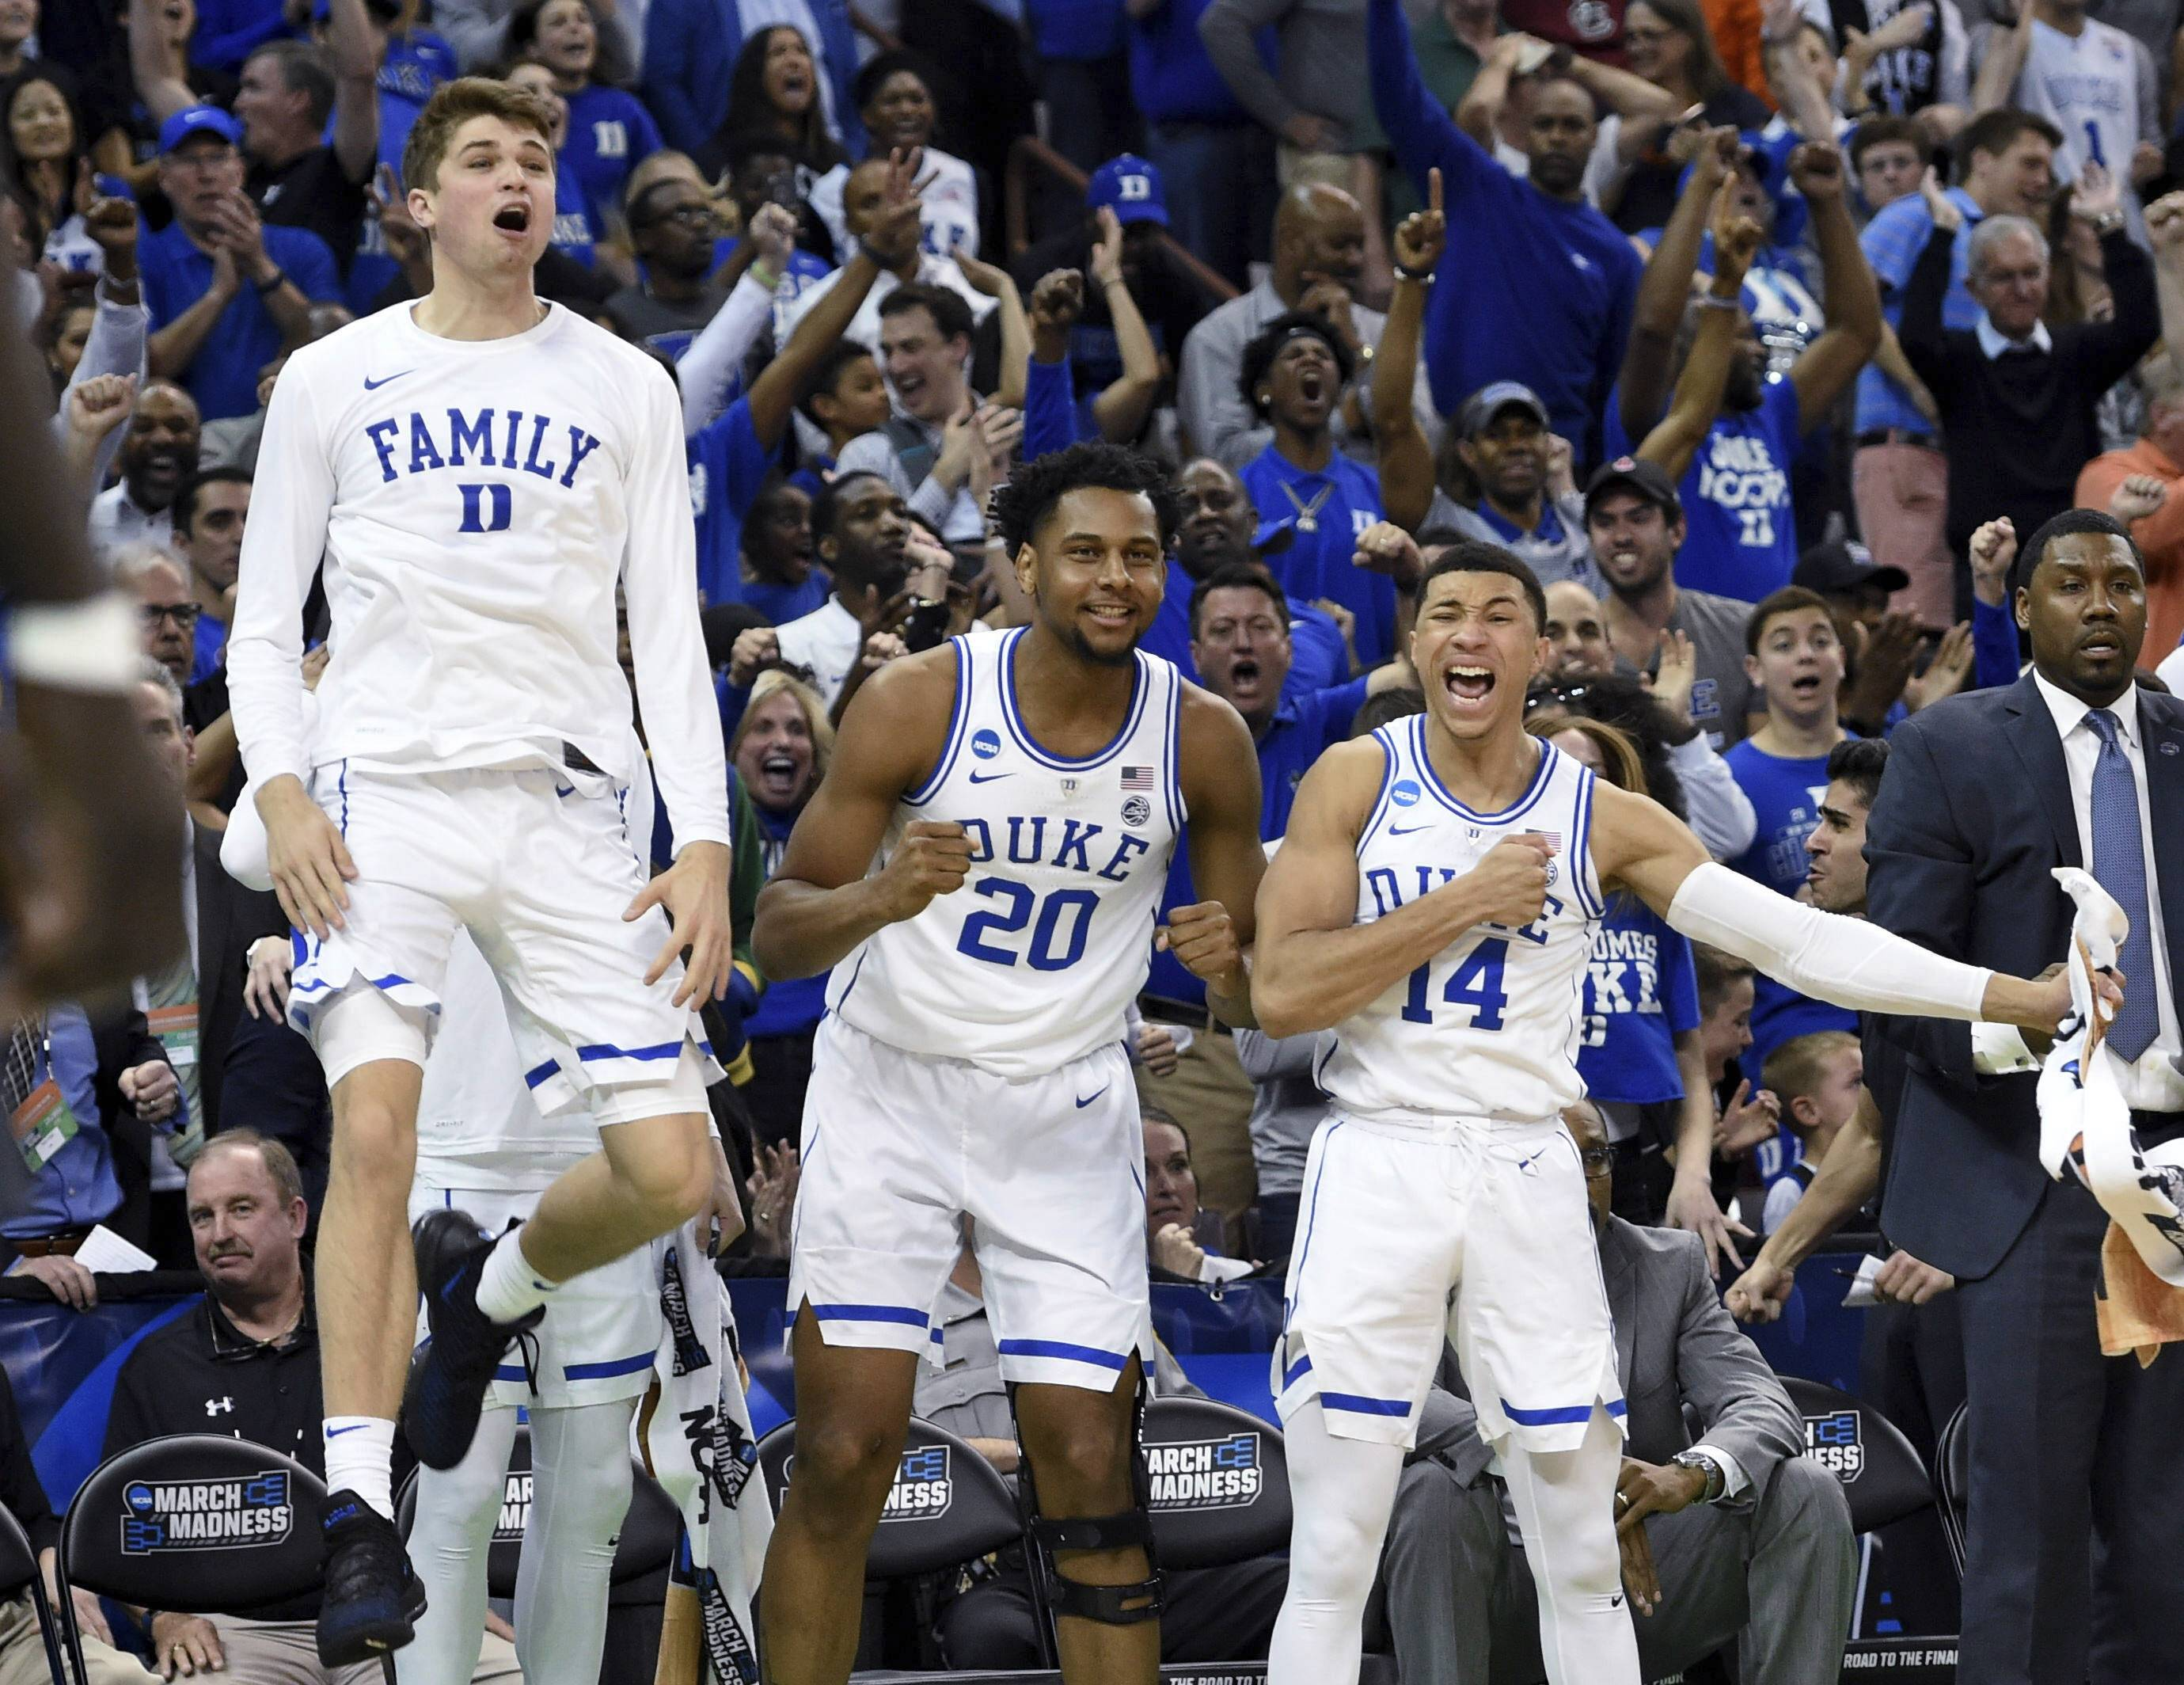 Duke's bench reacts to a play Sunday during the second half against Central Florida in the NCAA Tournament in Columbia, South Carolina.